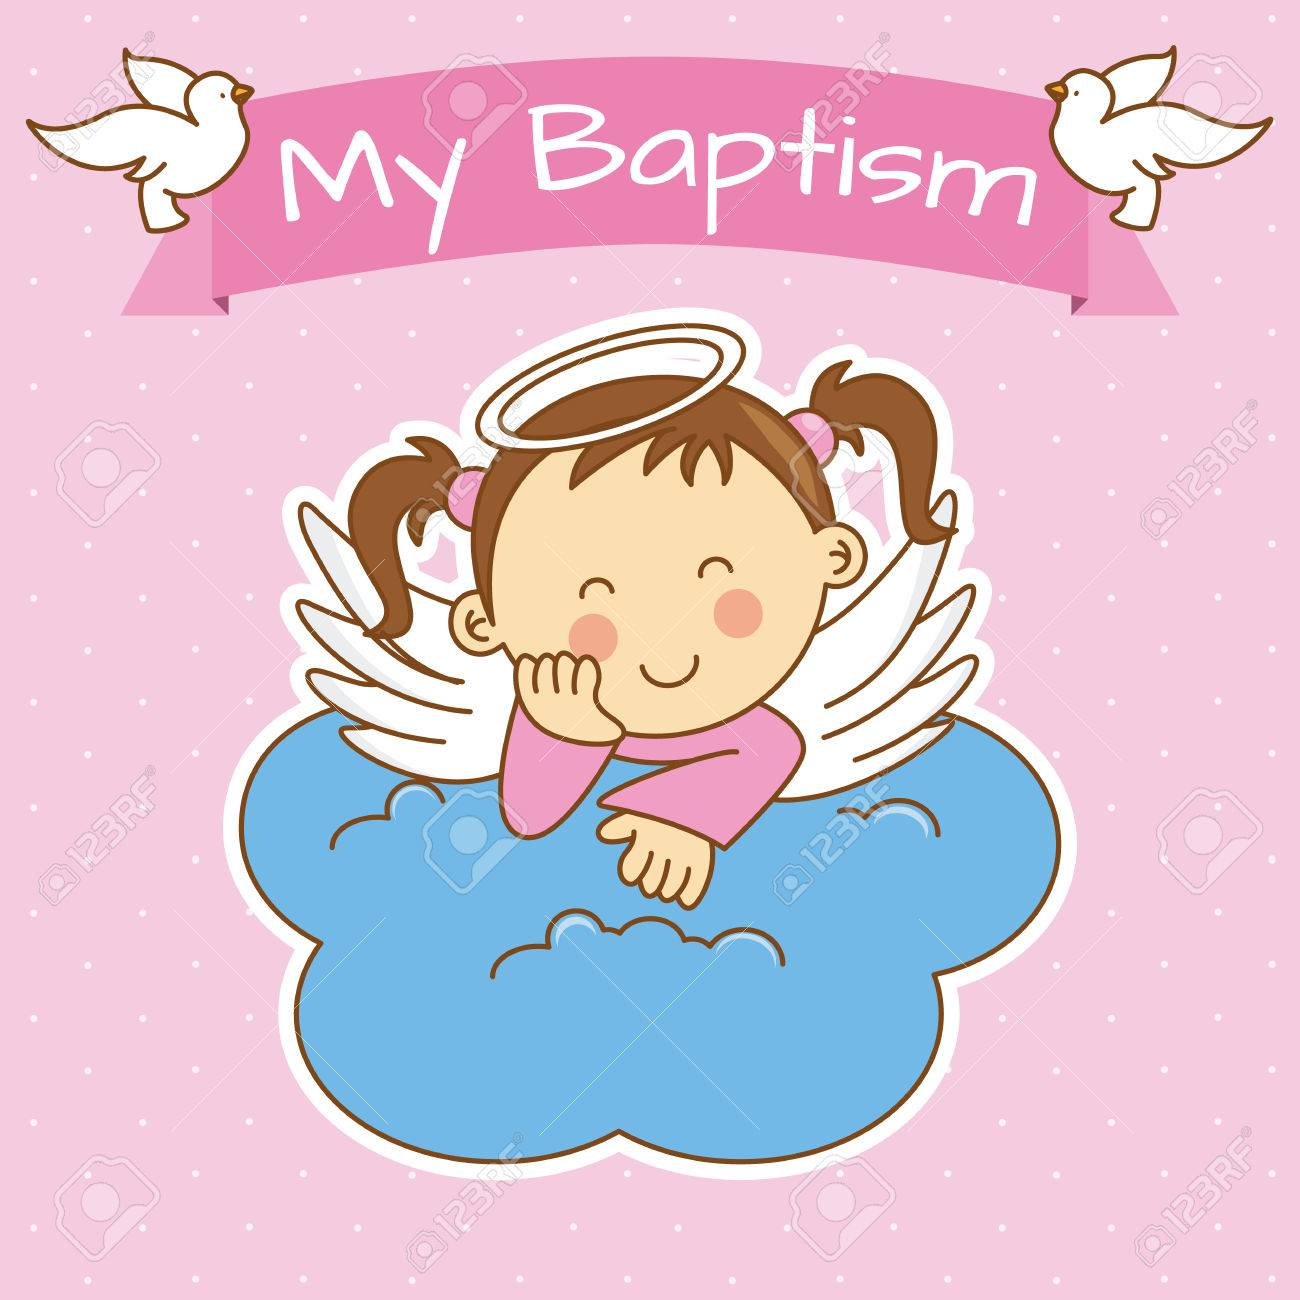 5 417 baptism cliparts stock vector and royalty free baptism rh 123rf com Baptism Graphics catholic baptism images clipart